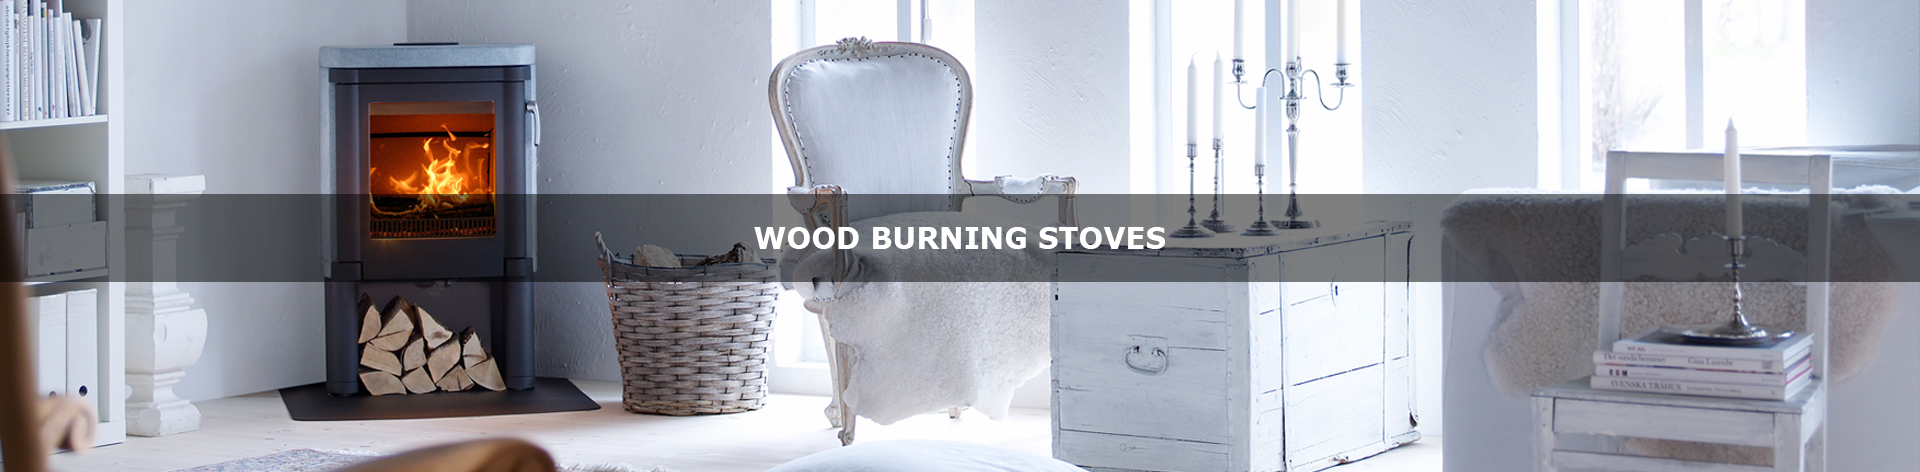 Wood Burning Stoves Glasgow - Stove World Glasgow Scotland